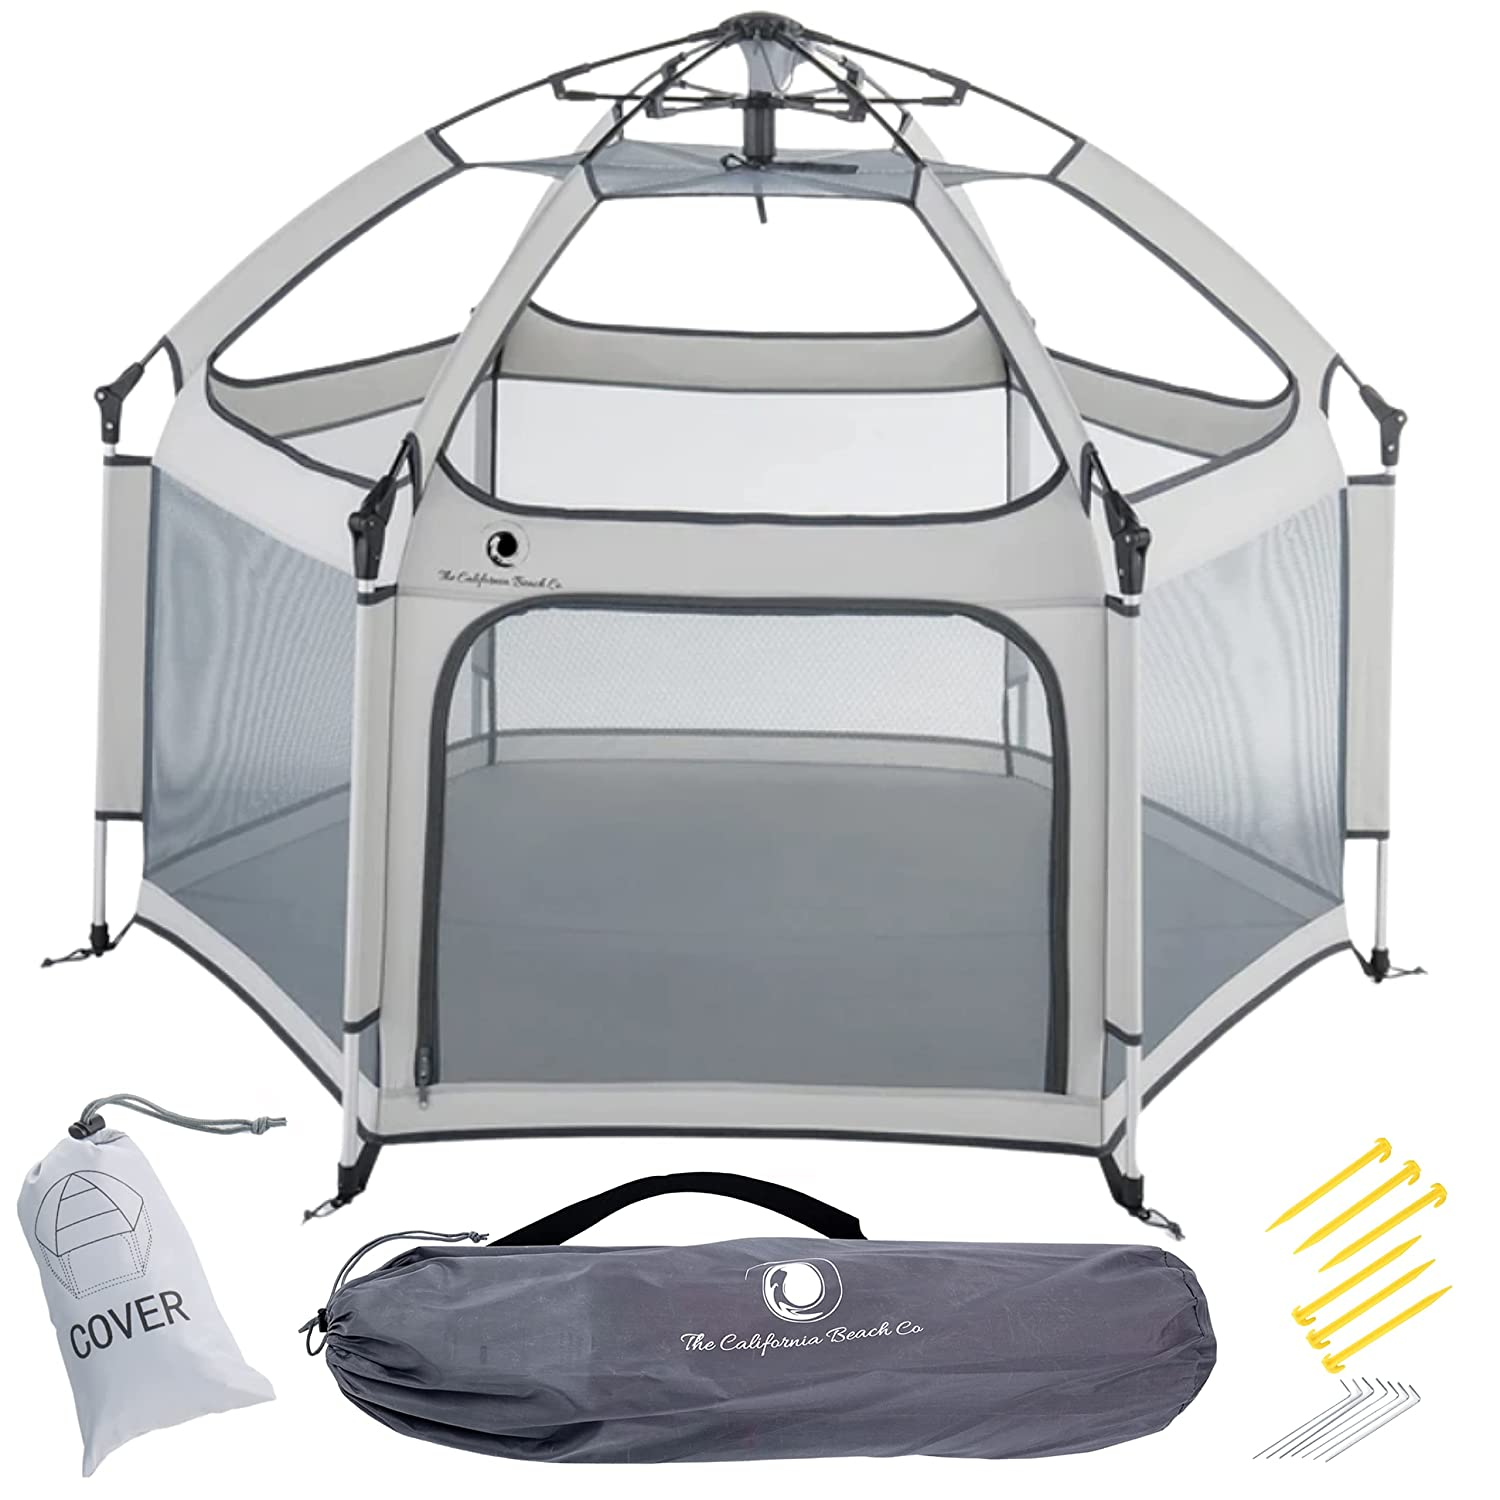 Pop 'N Go Portable Playpen - Lightweight, Folding, Easily Collapsible Play Yard Crib for Indoor & Outdoor Play - Perfect Canopy Play Pen for Any Baby Toddler or Small Child (Cosmic Grey)